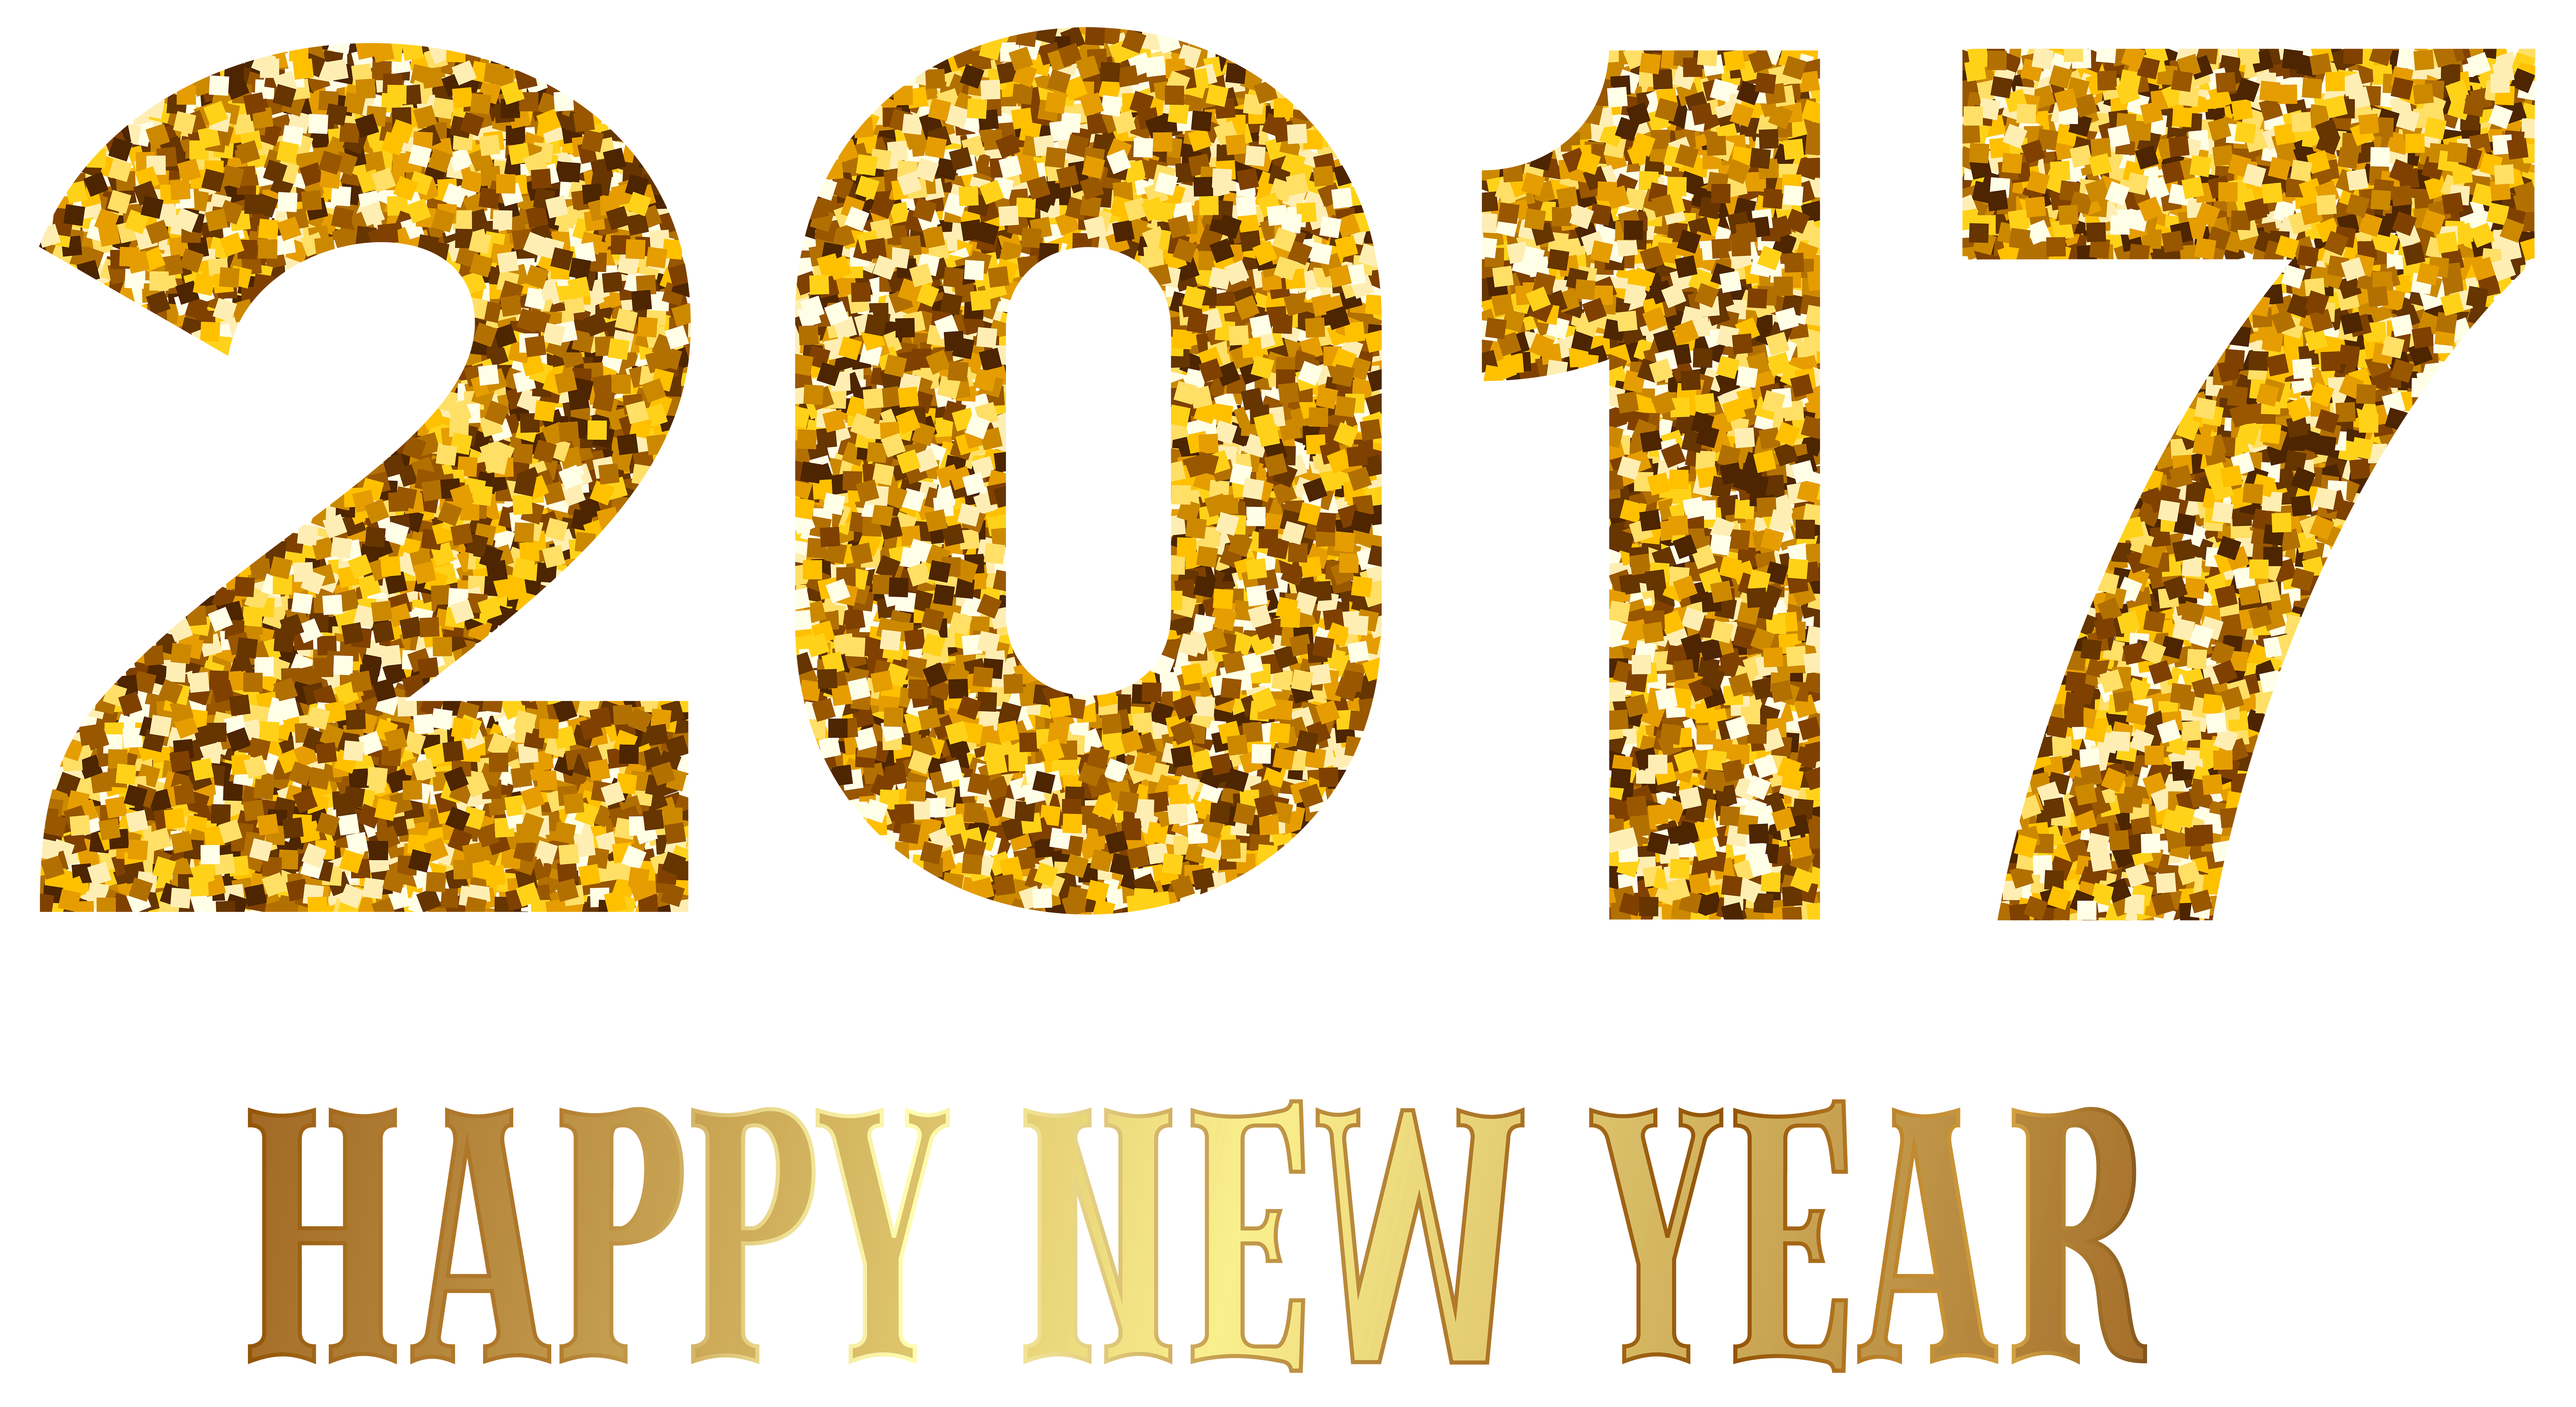 happy year transparent. 2017 clipart new year's